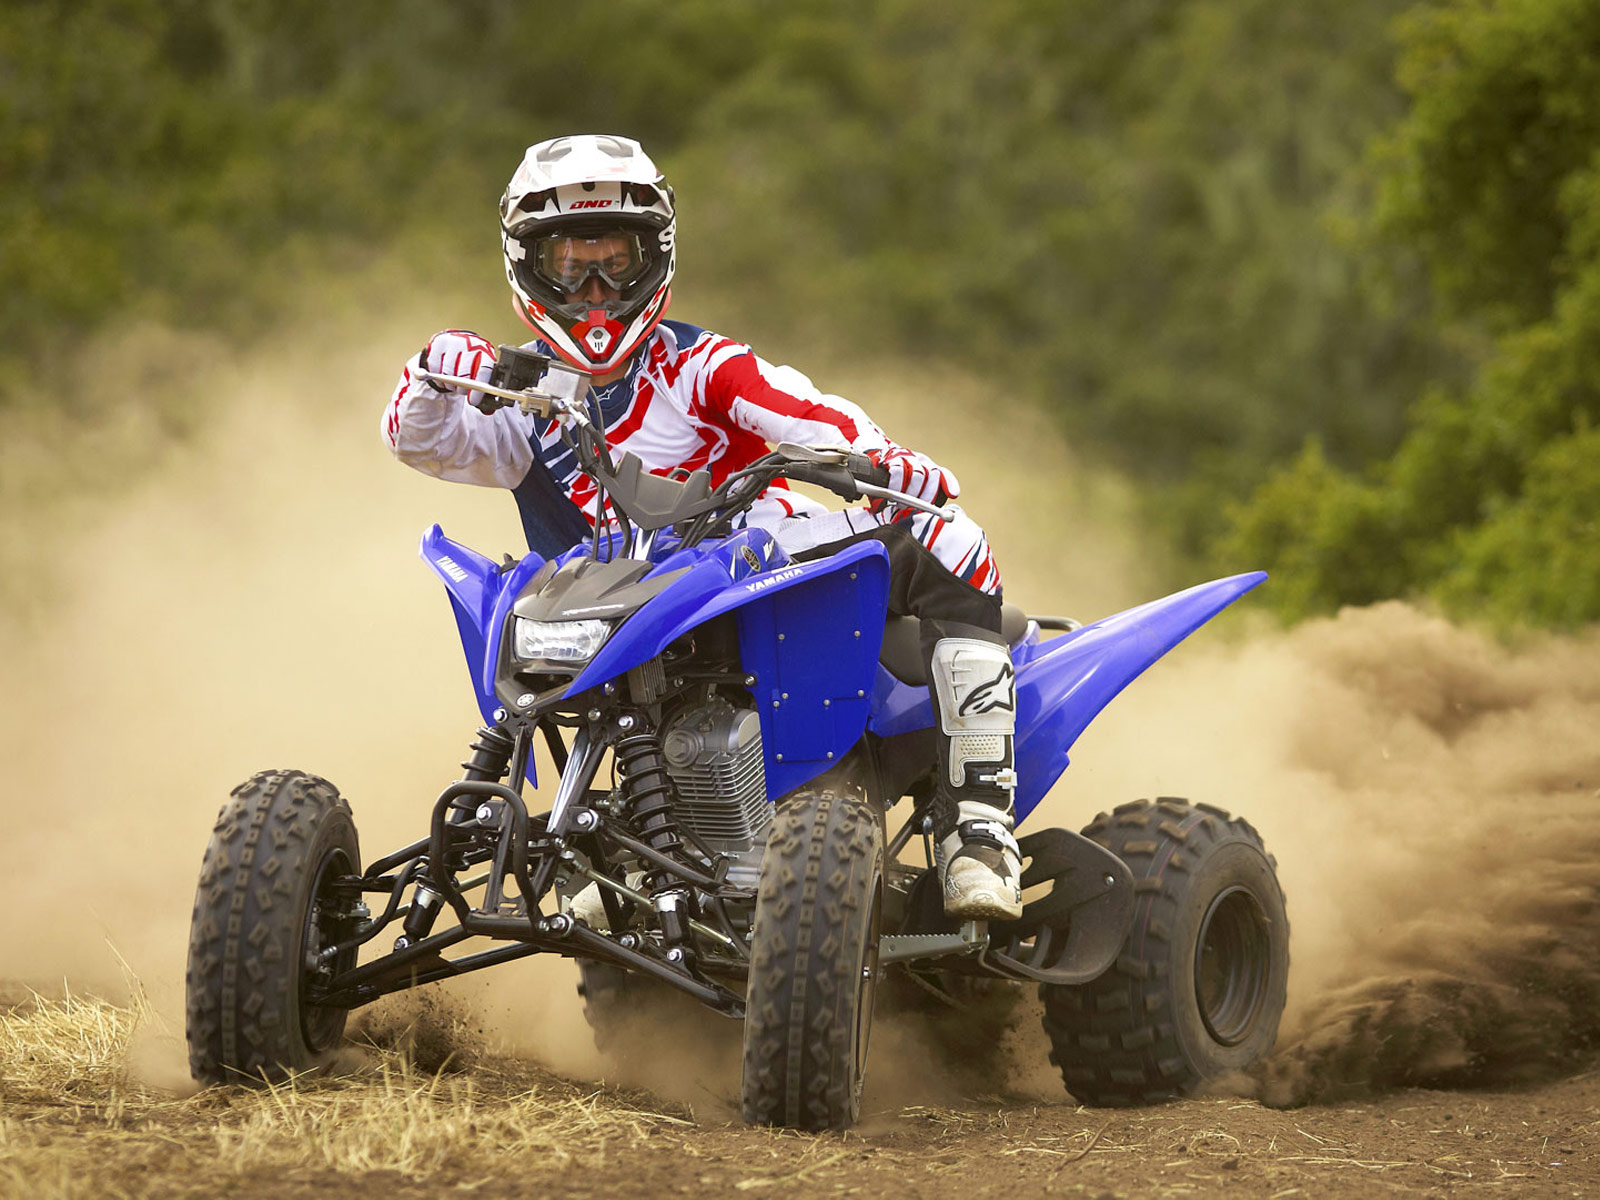 2011 yamaha raptor 125 pictures specs atv accident lawyers. Black Bedroom Furniture Sets. Home Design Ideas